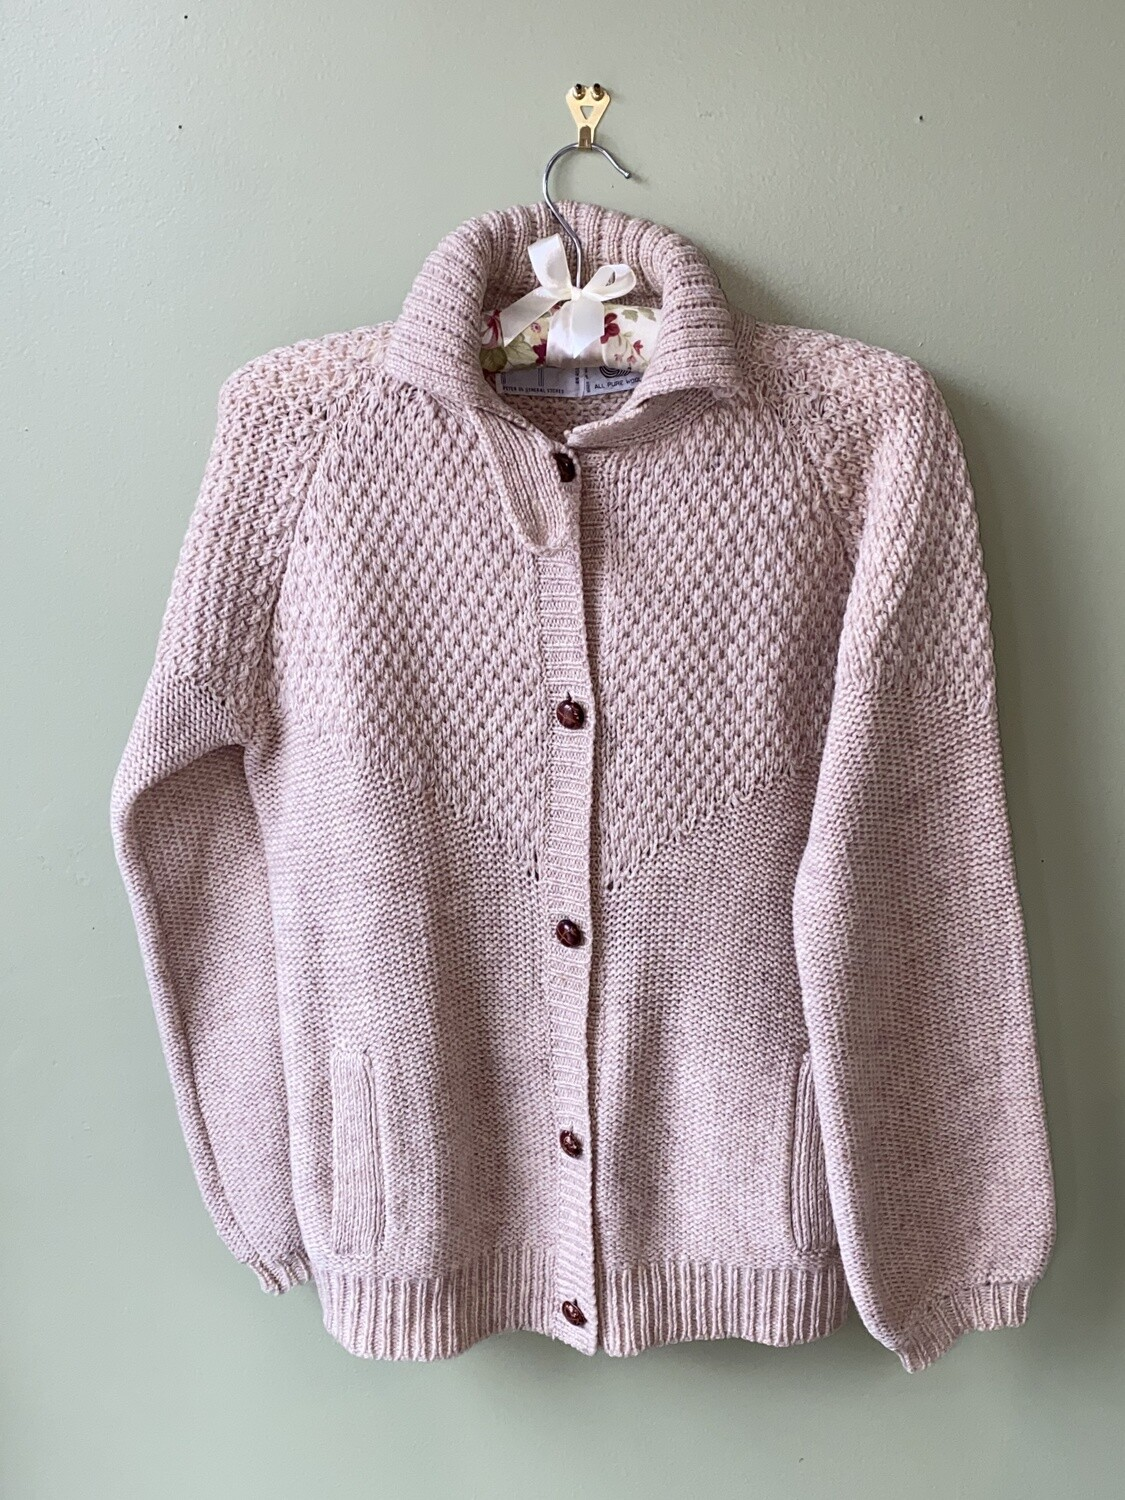 Vintage PGS Pure Wool, Button-Front Sweater, Size M